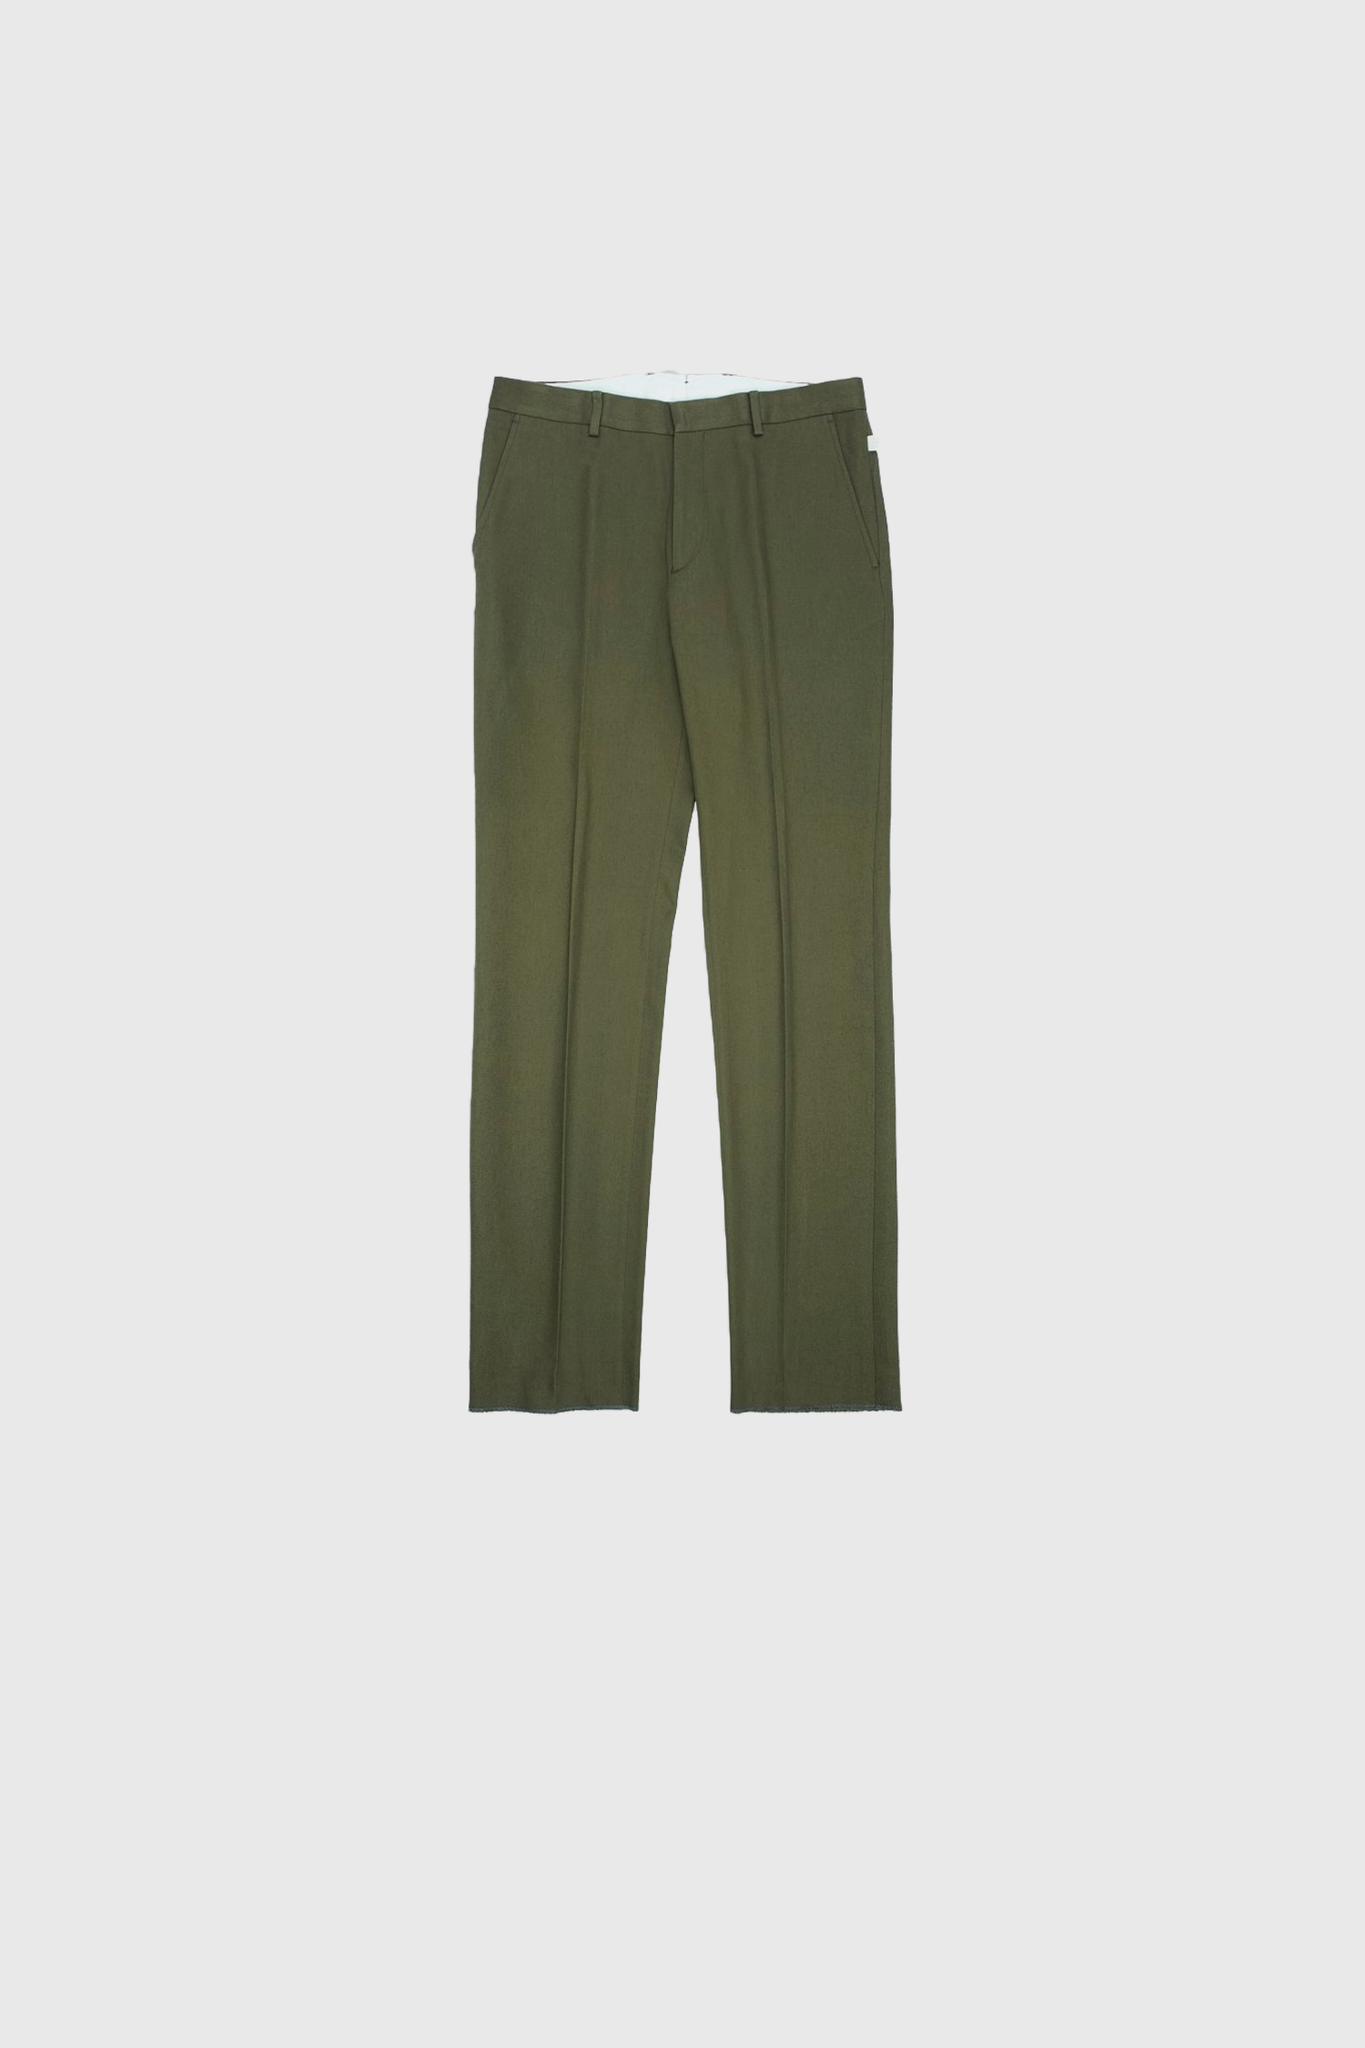 BELLEROSE: FRUSH 82 OLIVE